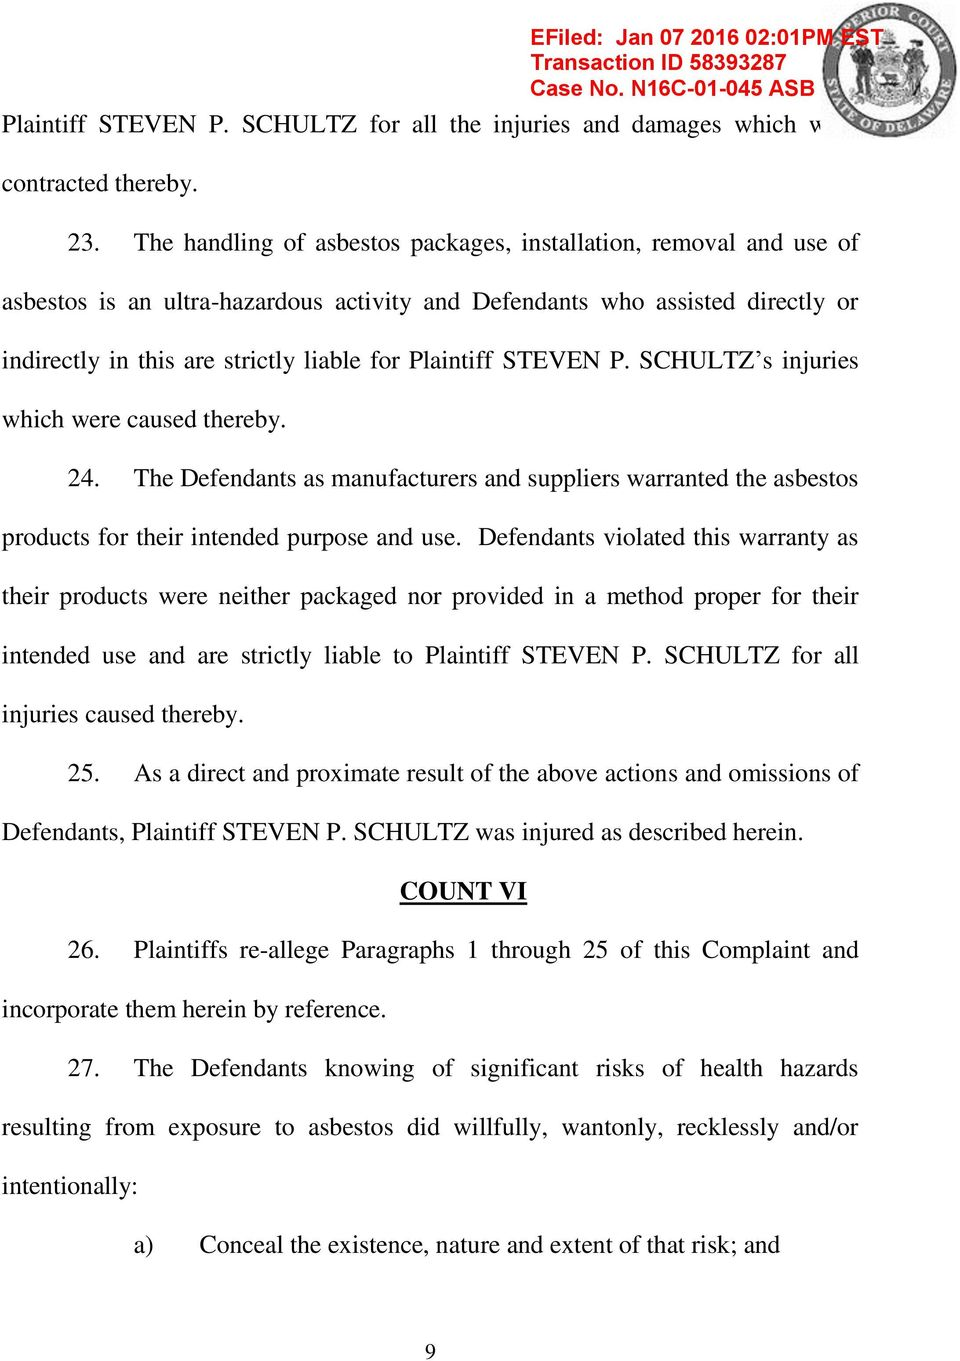 Plaintiff STEVEN P. SCHULTZ s injuries which were caused thereby. 24. The Defendants as manufacturers and suppliers warranted the asbestos products for their intended purpose and use.